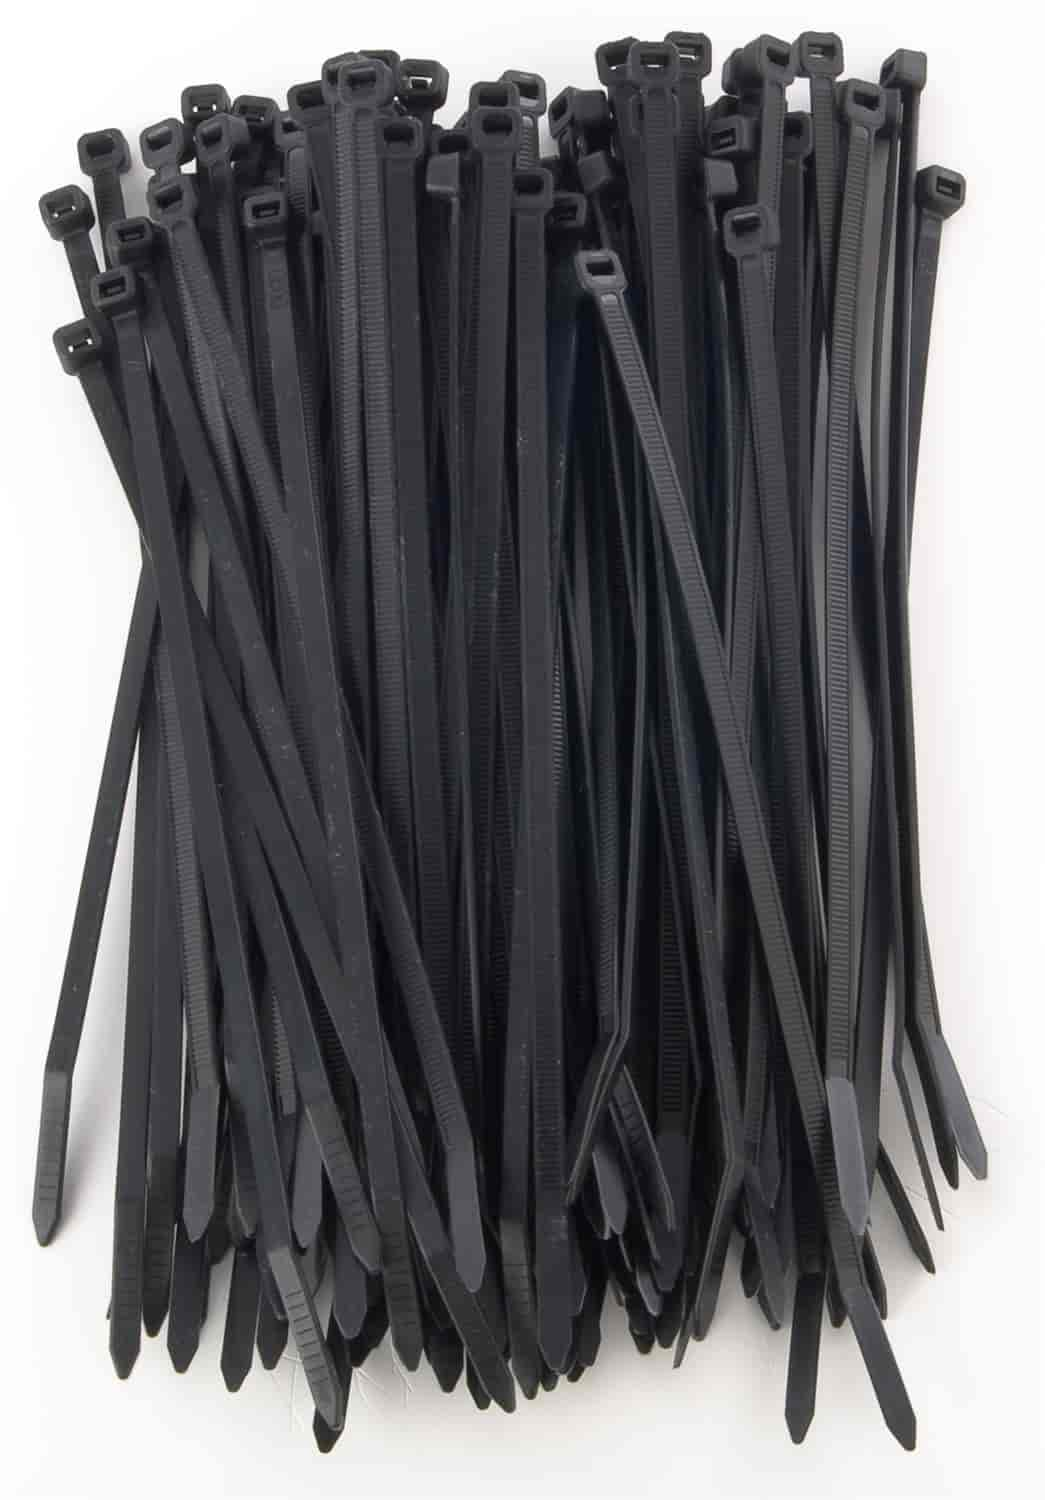 JEGS Performance Products 10605 - JEGS Nylon Wire and Cable Ties